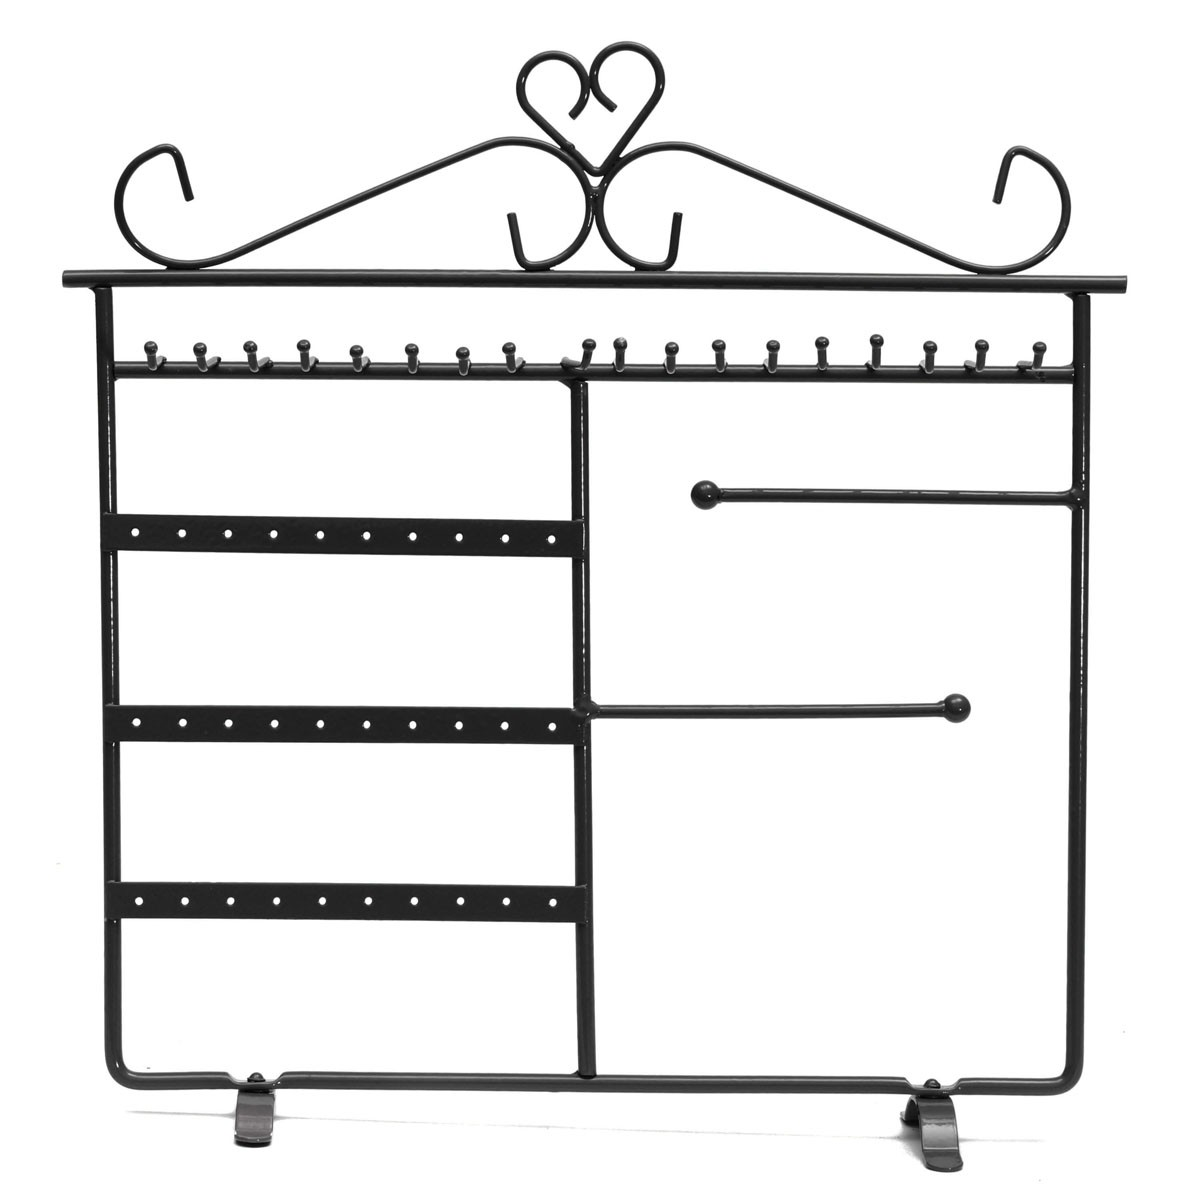 New Design Portable New Earring Necklace Jewelry Display Shelf Rack Hanging Holder Iron 36 Holes And 18 Hooks 4 Colors(China (Mainland))